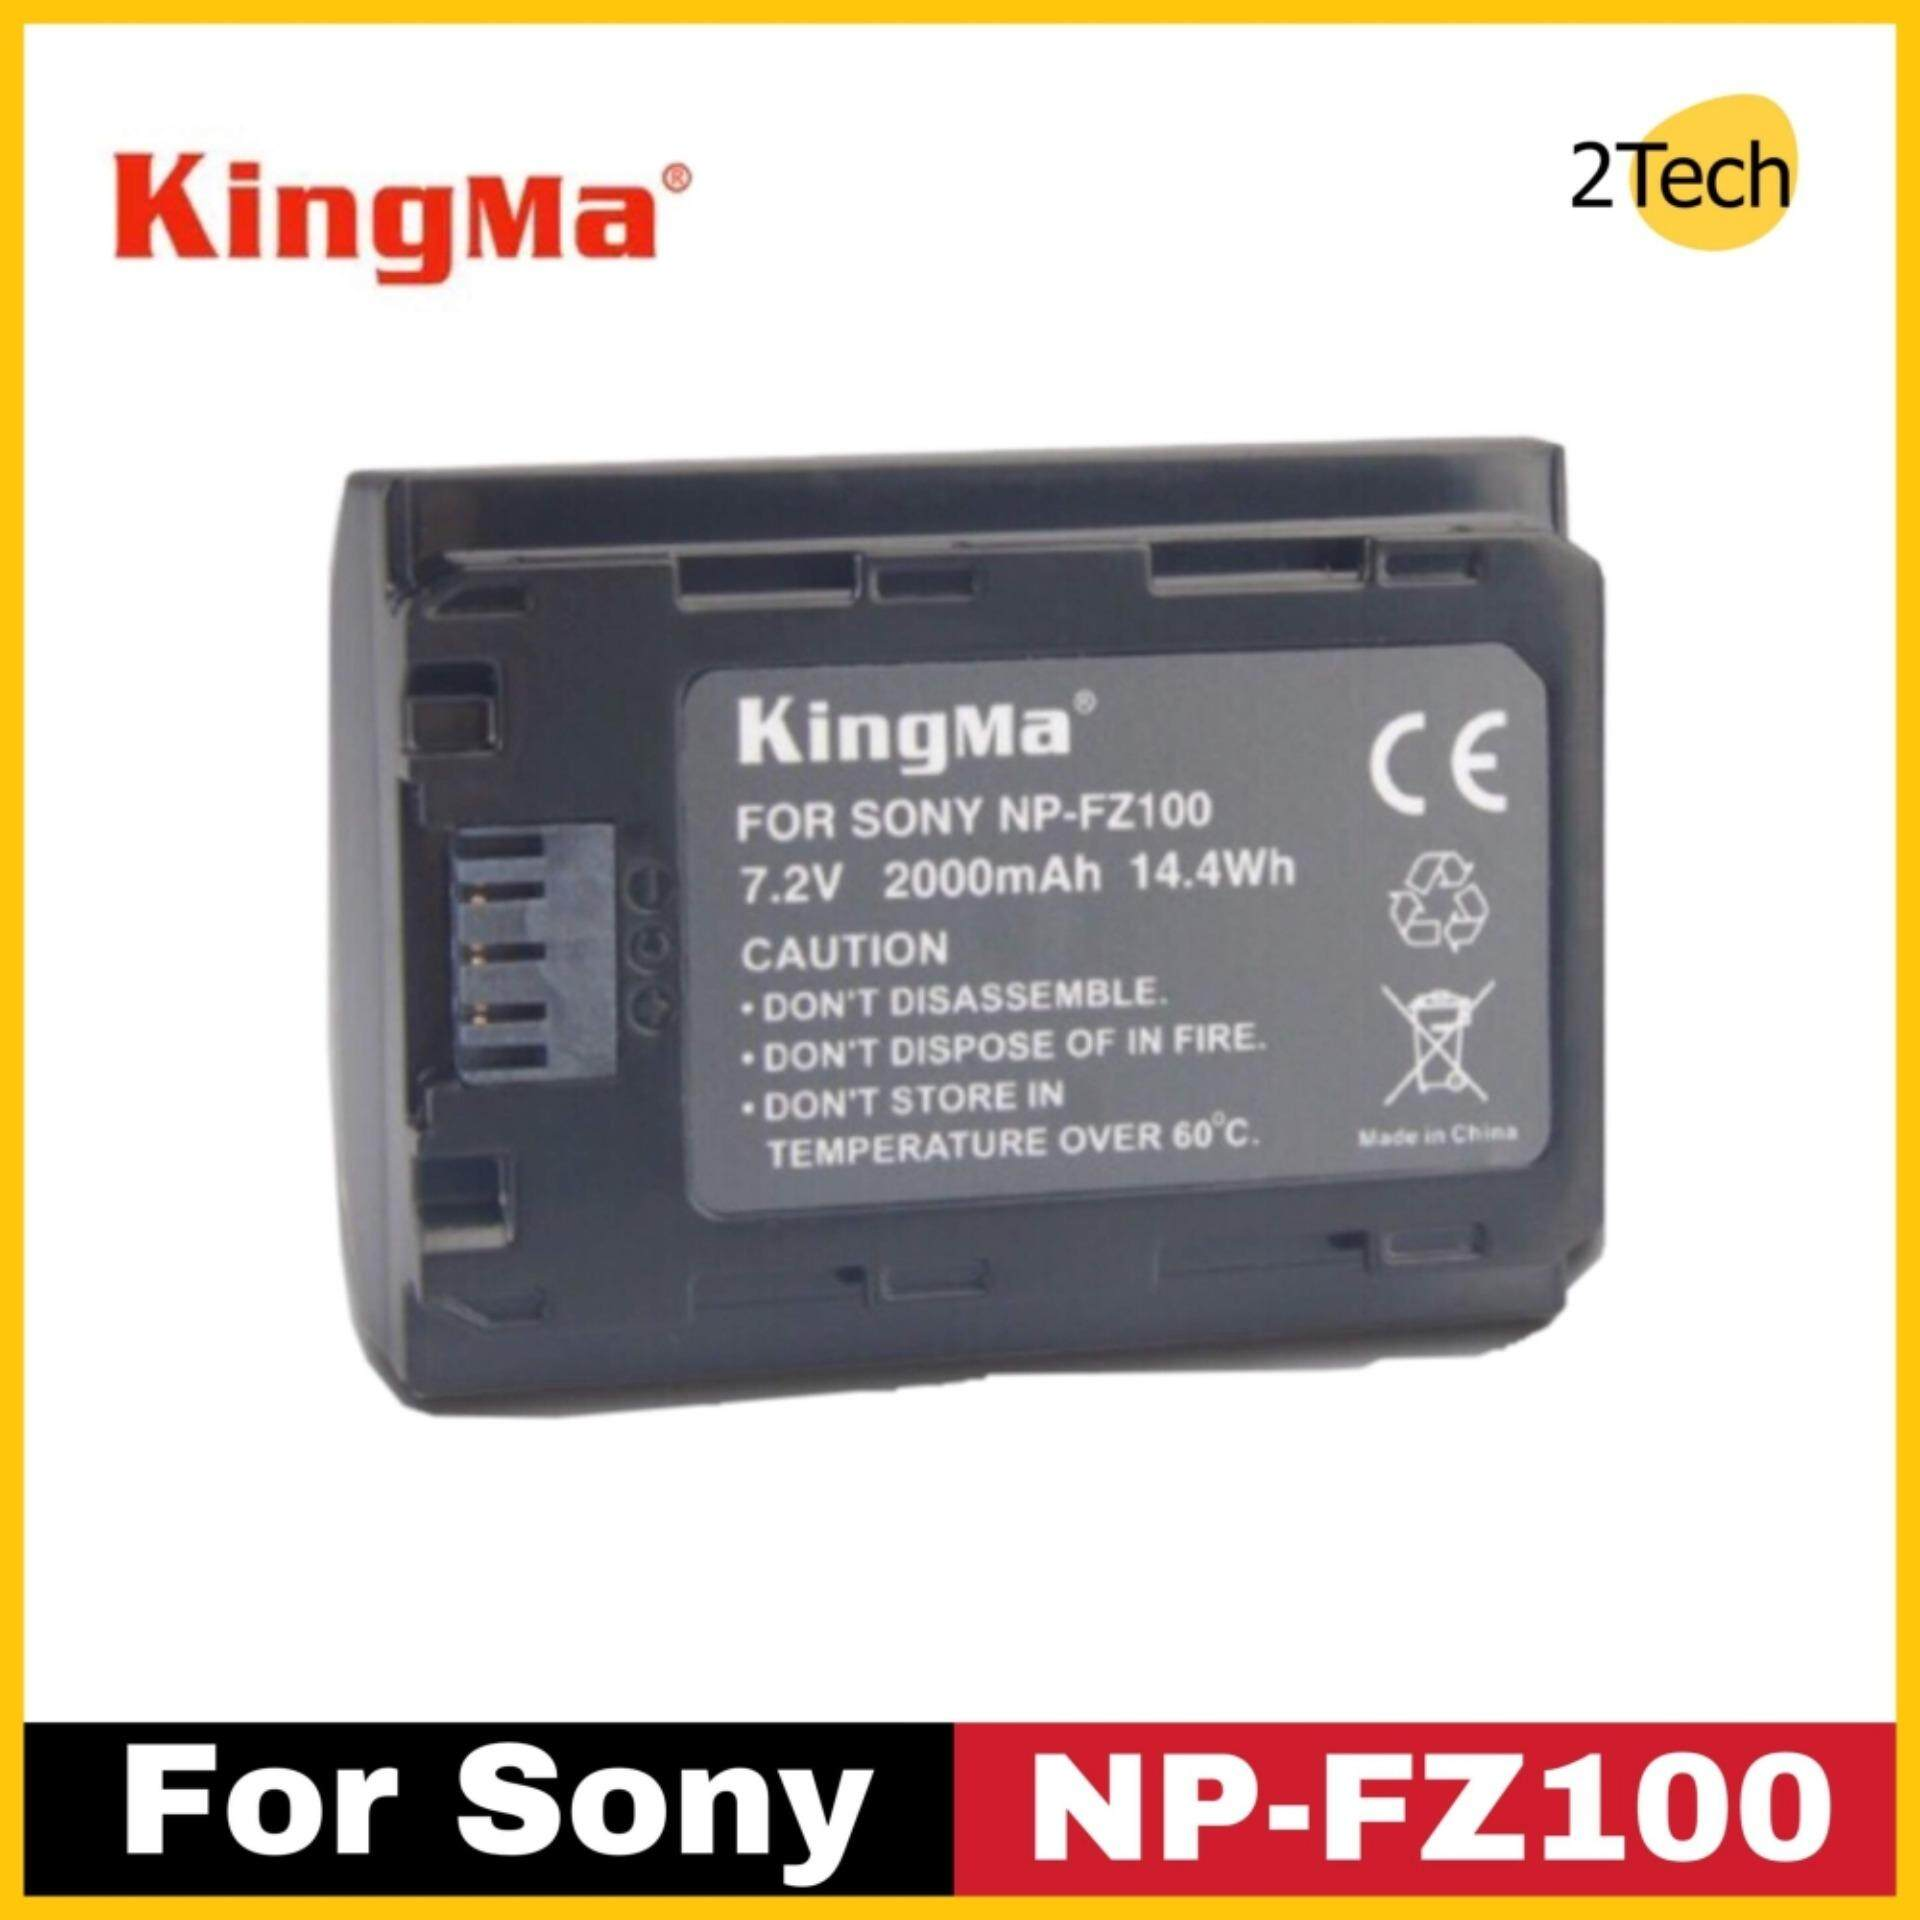 KingMa np fz100 battery NP-FZ100 battery 2000 mAh for SONY ILCE-9 A7m3 a7r3 A9